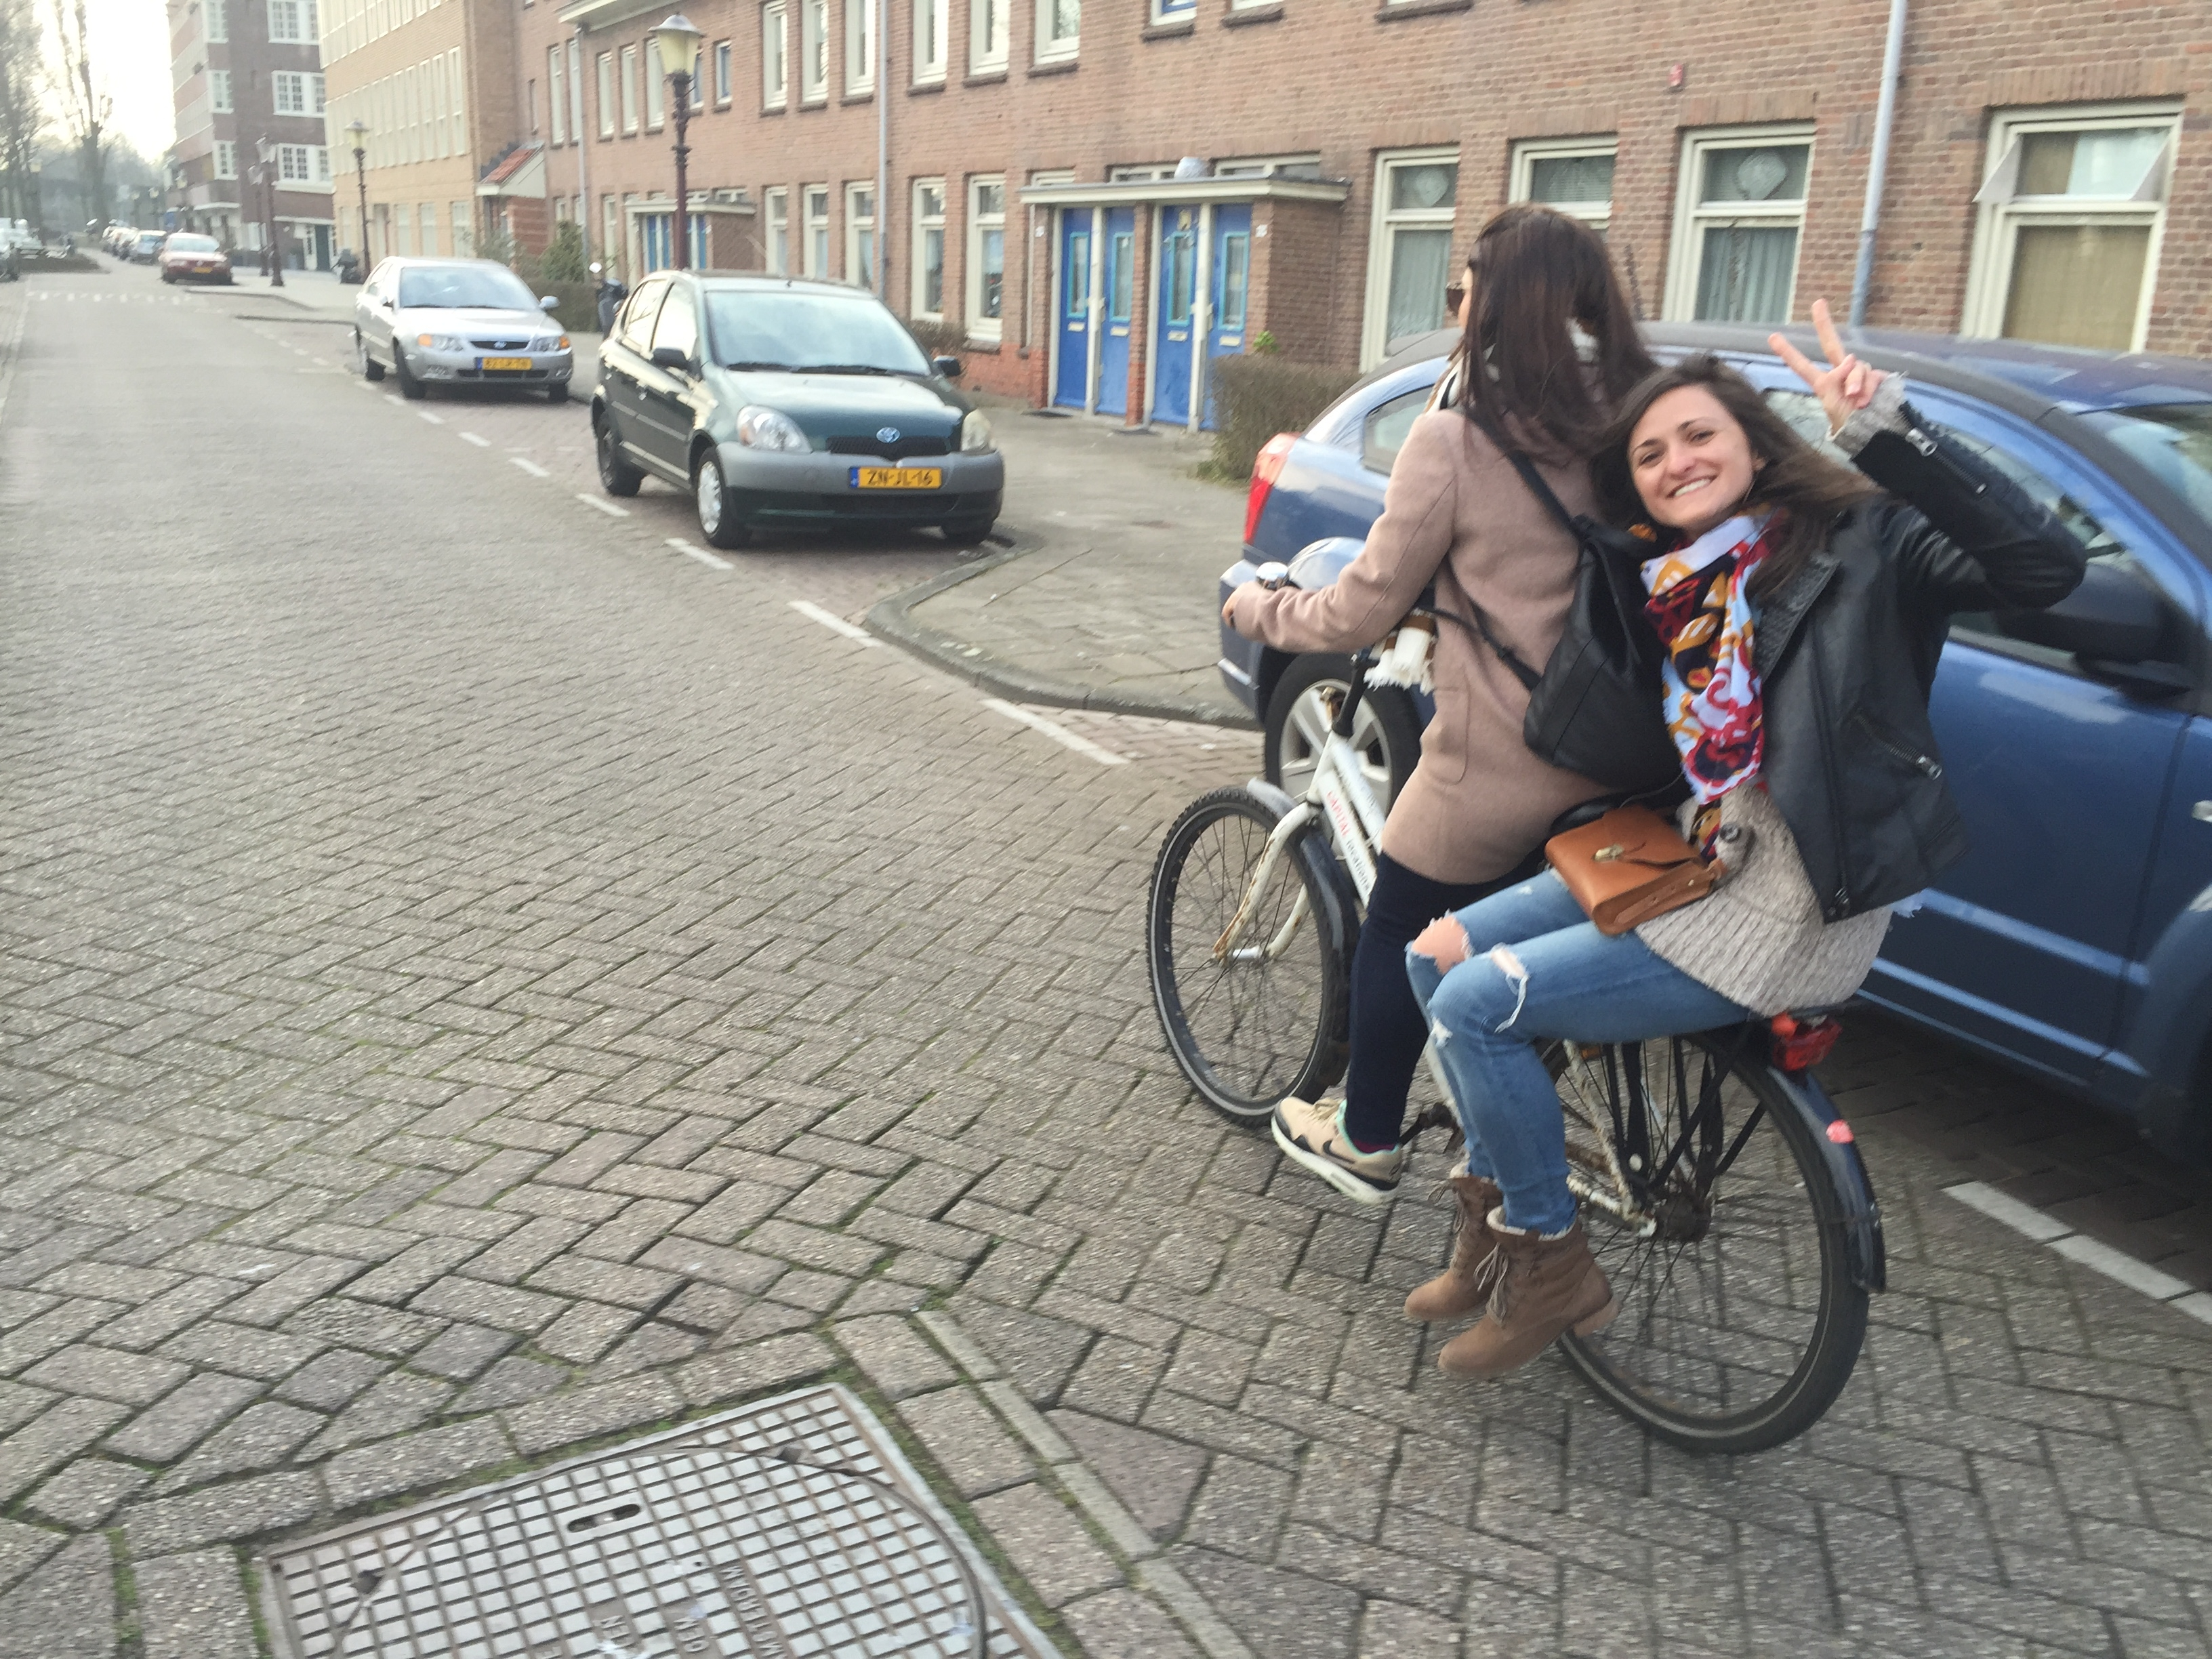 That's how we get around the city